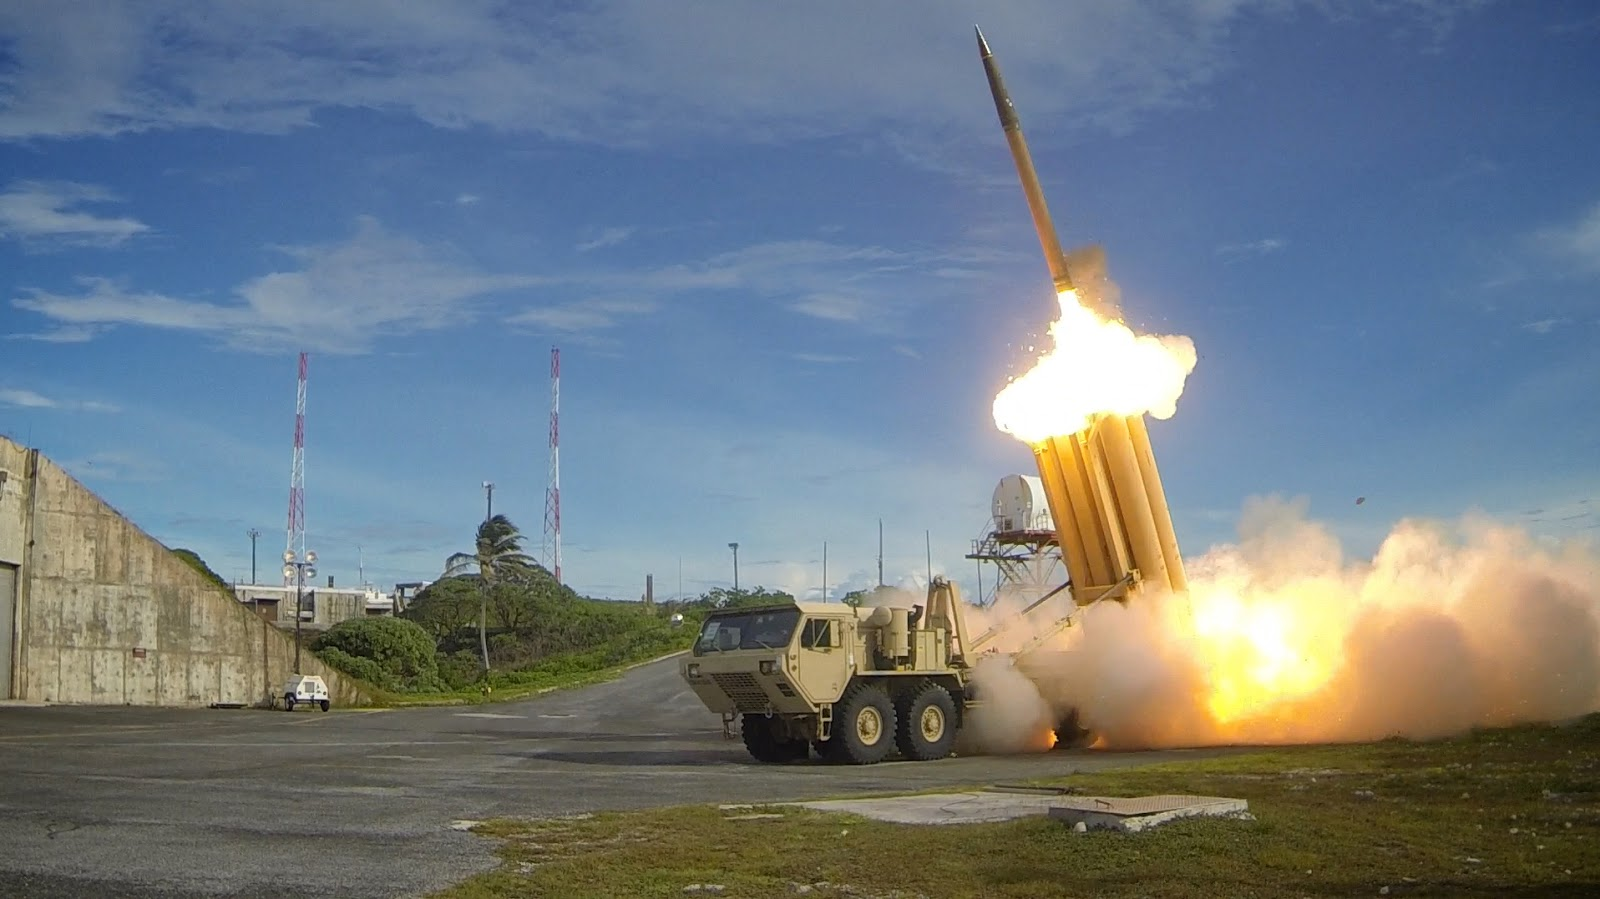 +Two+Terminal+High+Altitude+Area+Defense+(THAAD)+interceptors+are+launched+during+a+successful+intercept+test.+Missile+Defense+Agency+(MDA),+Ballistic+Missile+Defense+System+(BMDS)+Operational+Test+Agency,++(1).jpg